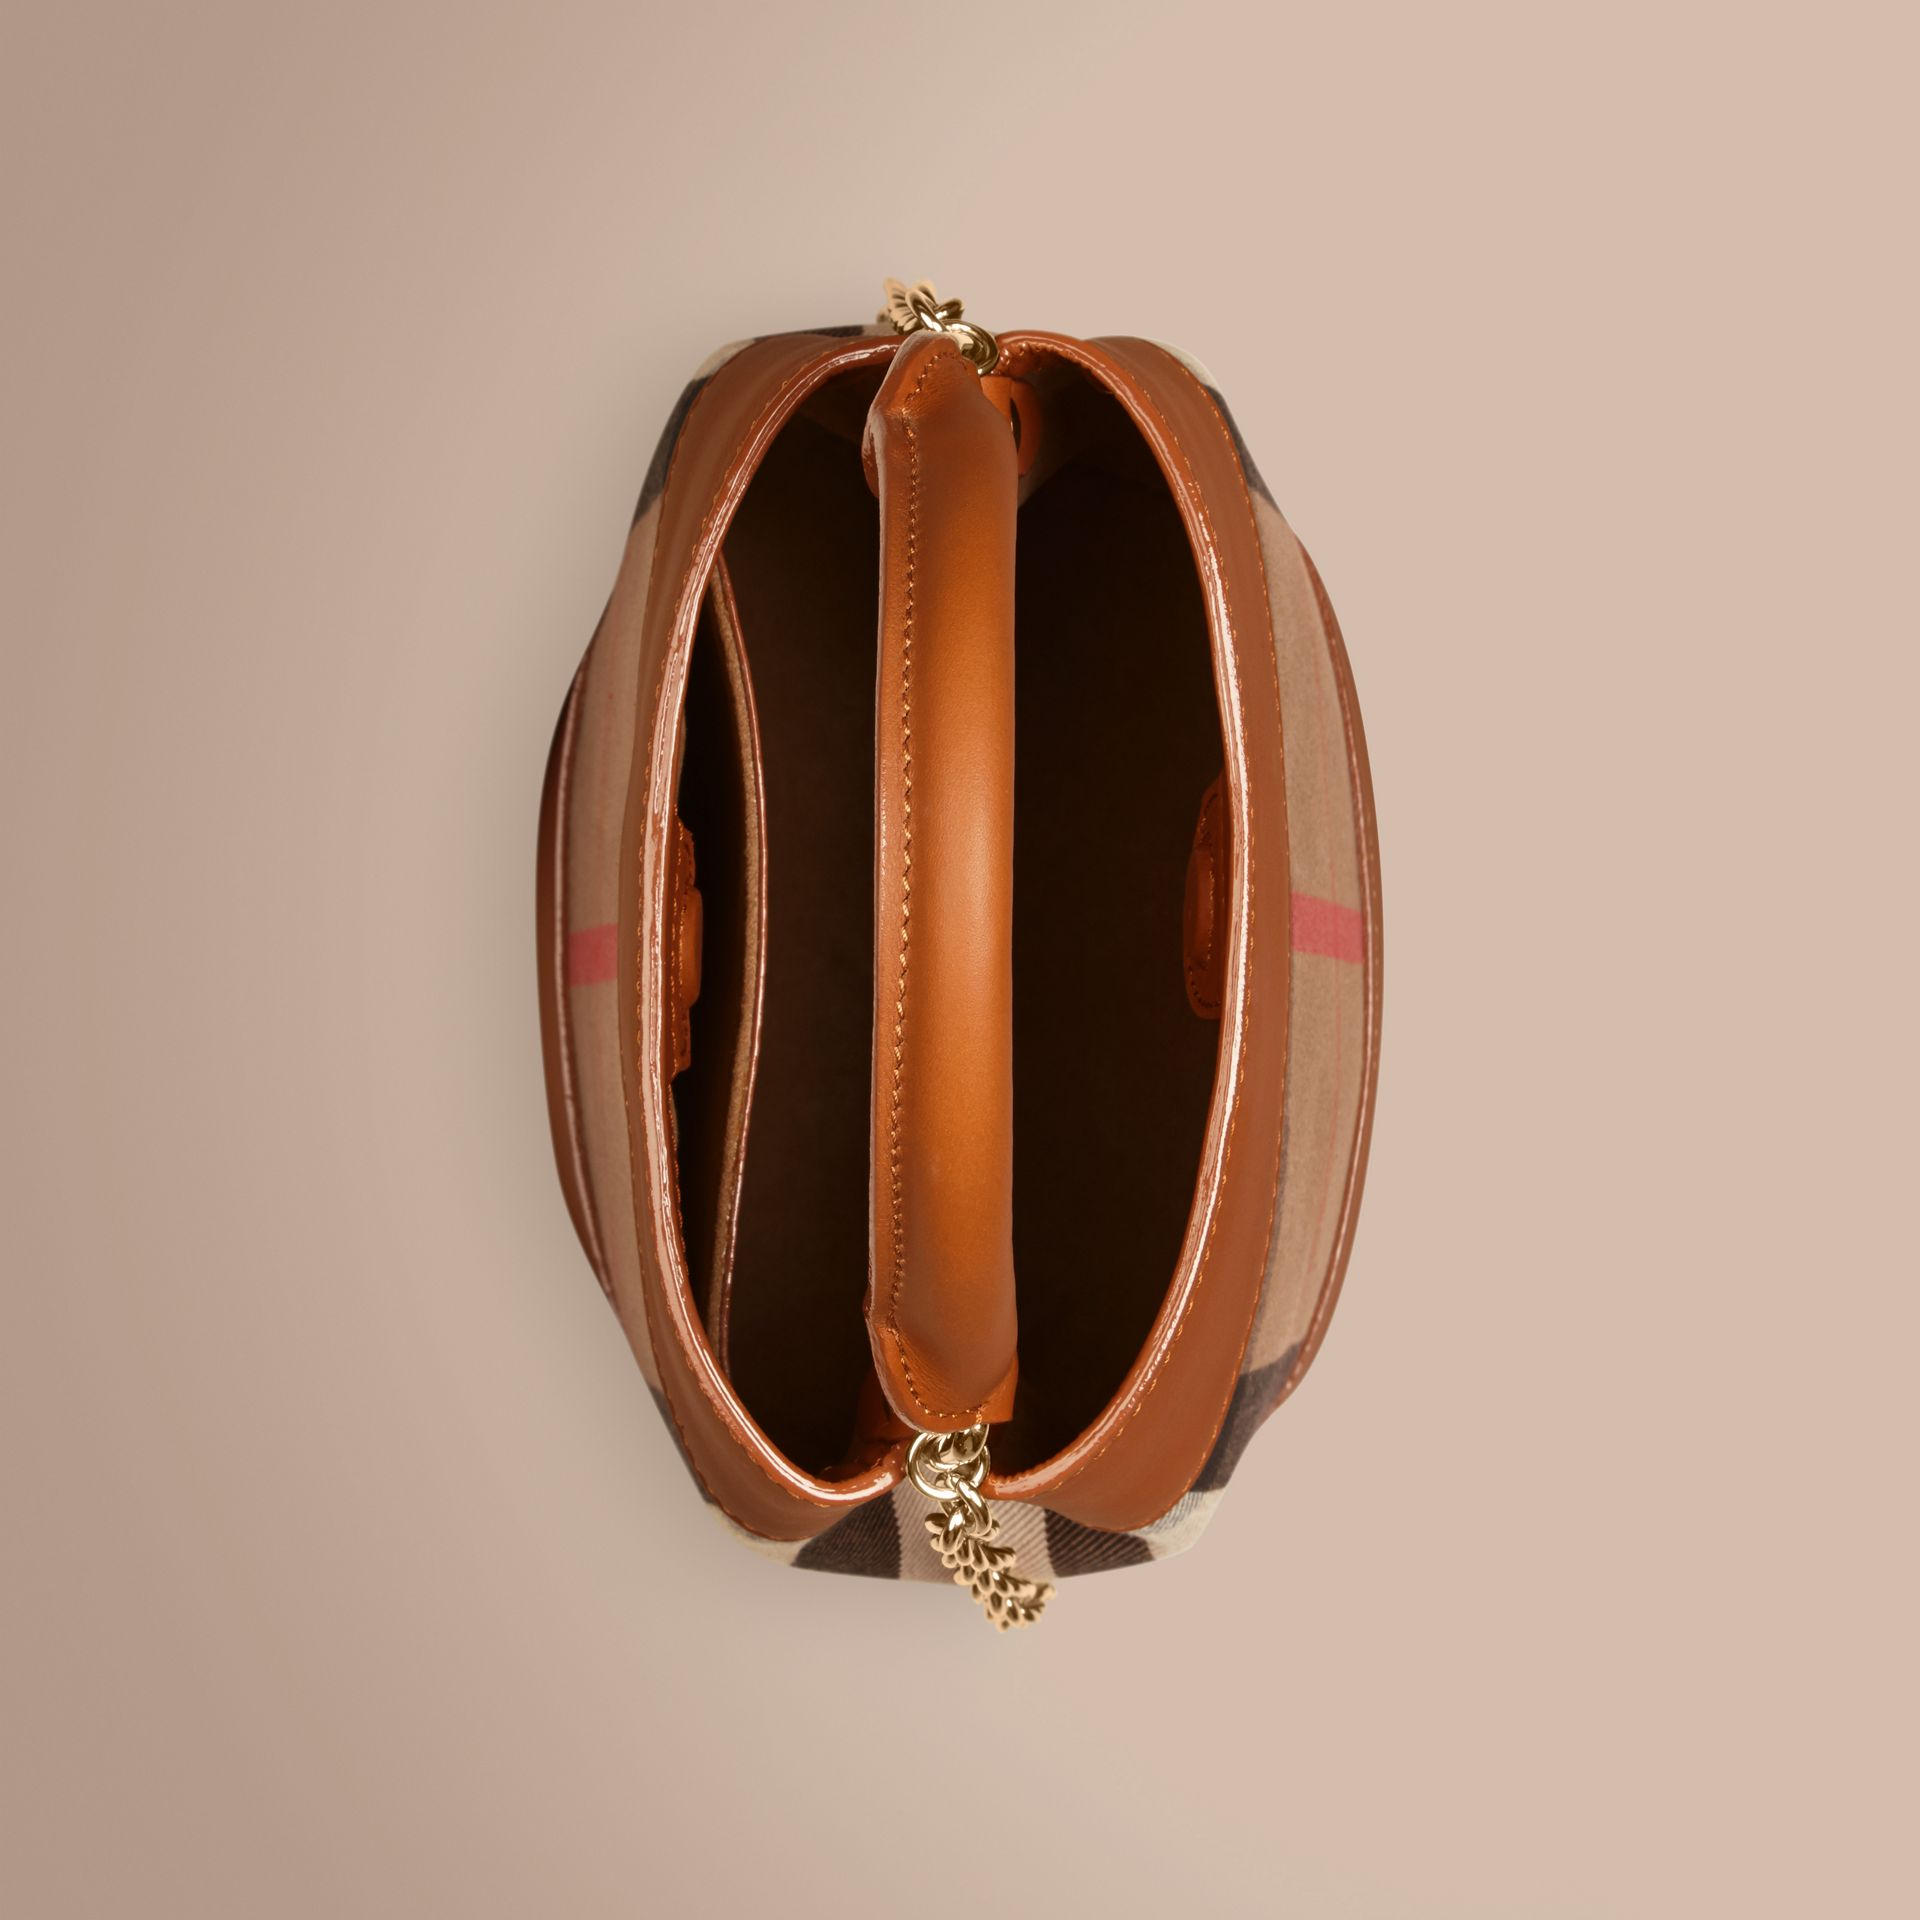 Light toffee The Small Bucket Bag in House Check and Leather Light Toffee - gallery image 5